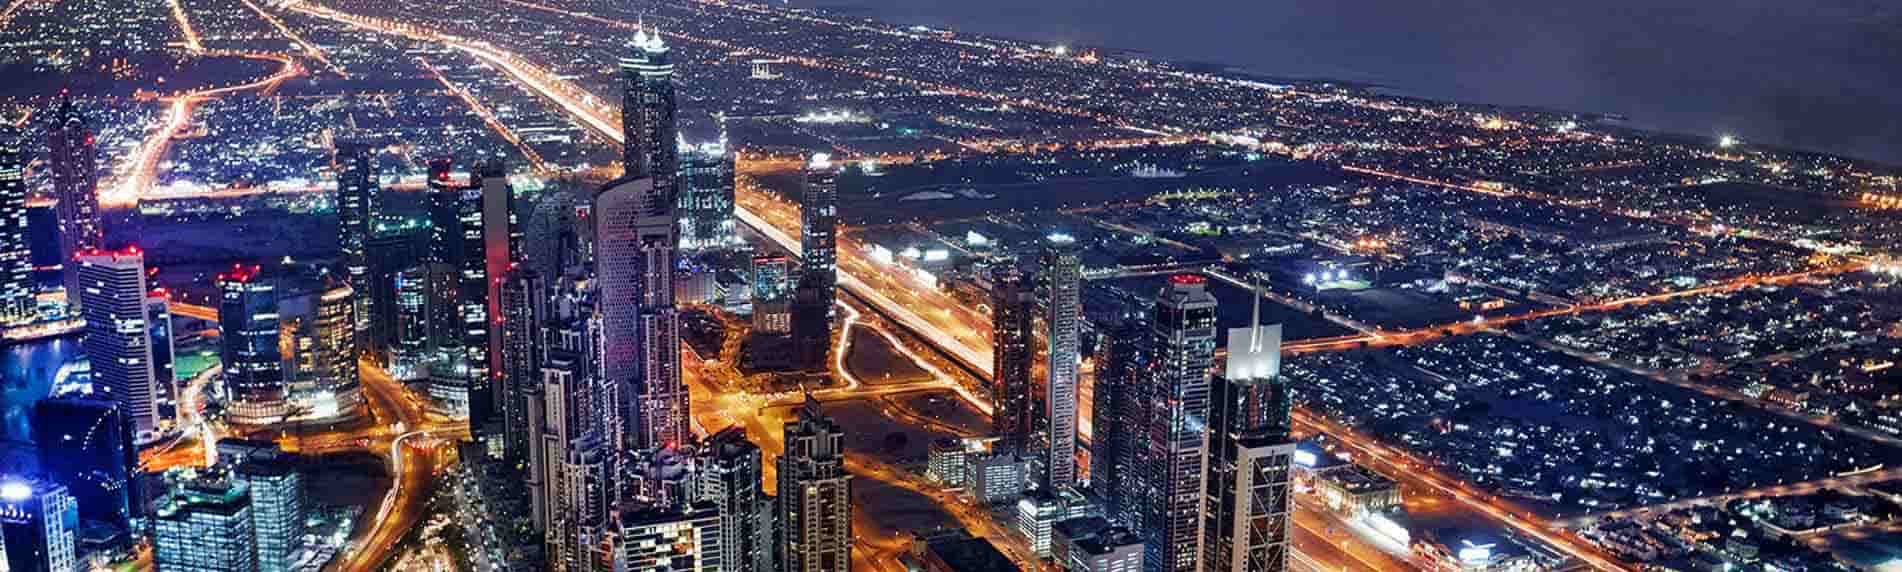 Splendors of Dubai 4 nights Package